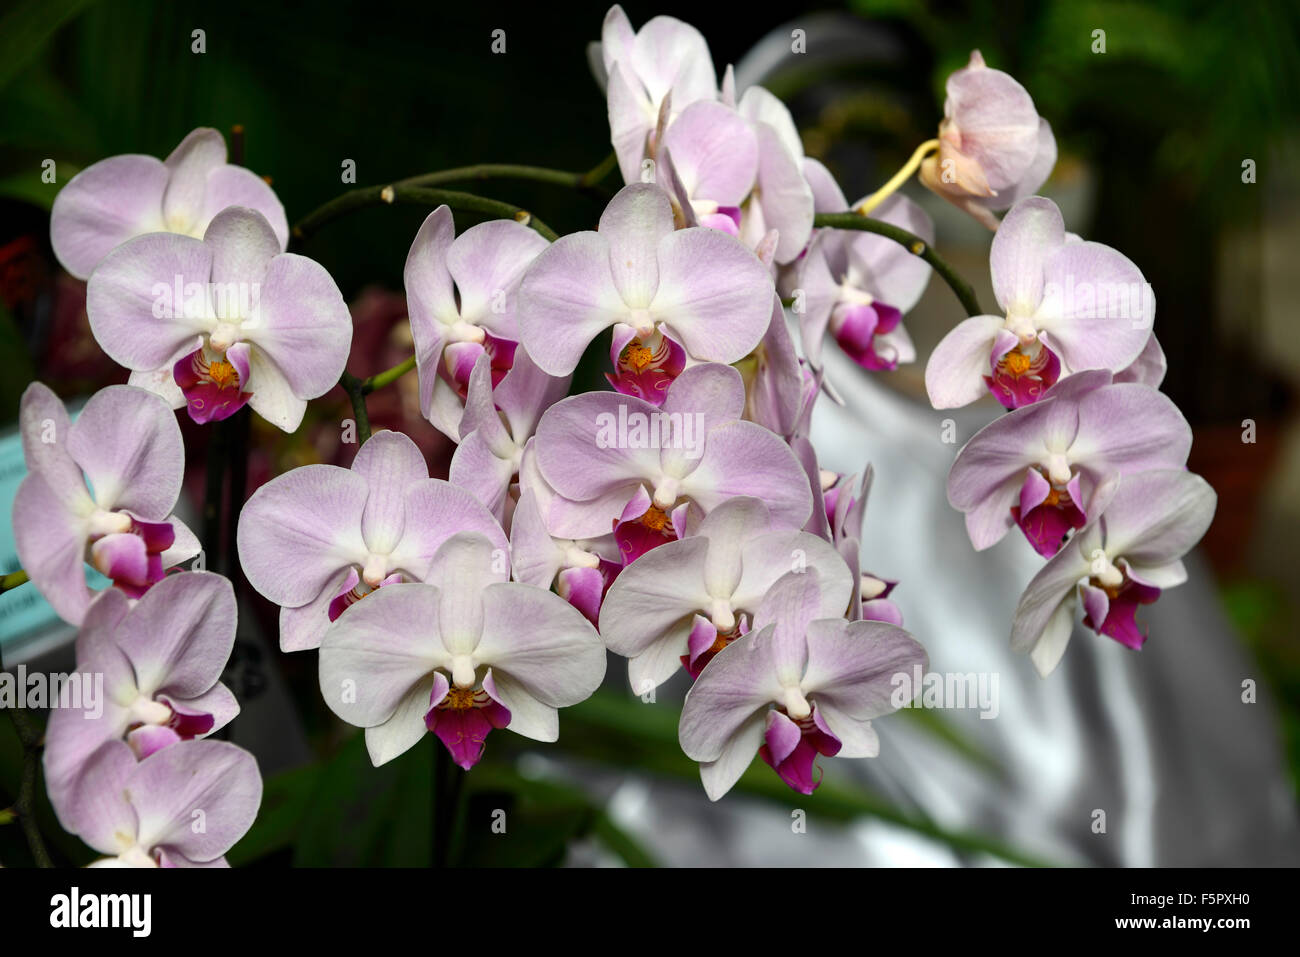 Phalaenopsis Super Pink Lady Flower Flowers Orchid Orchids Tropical